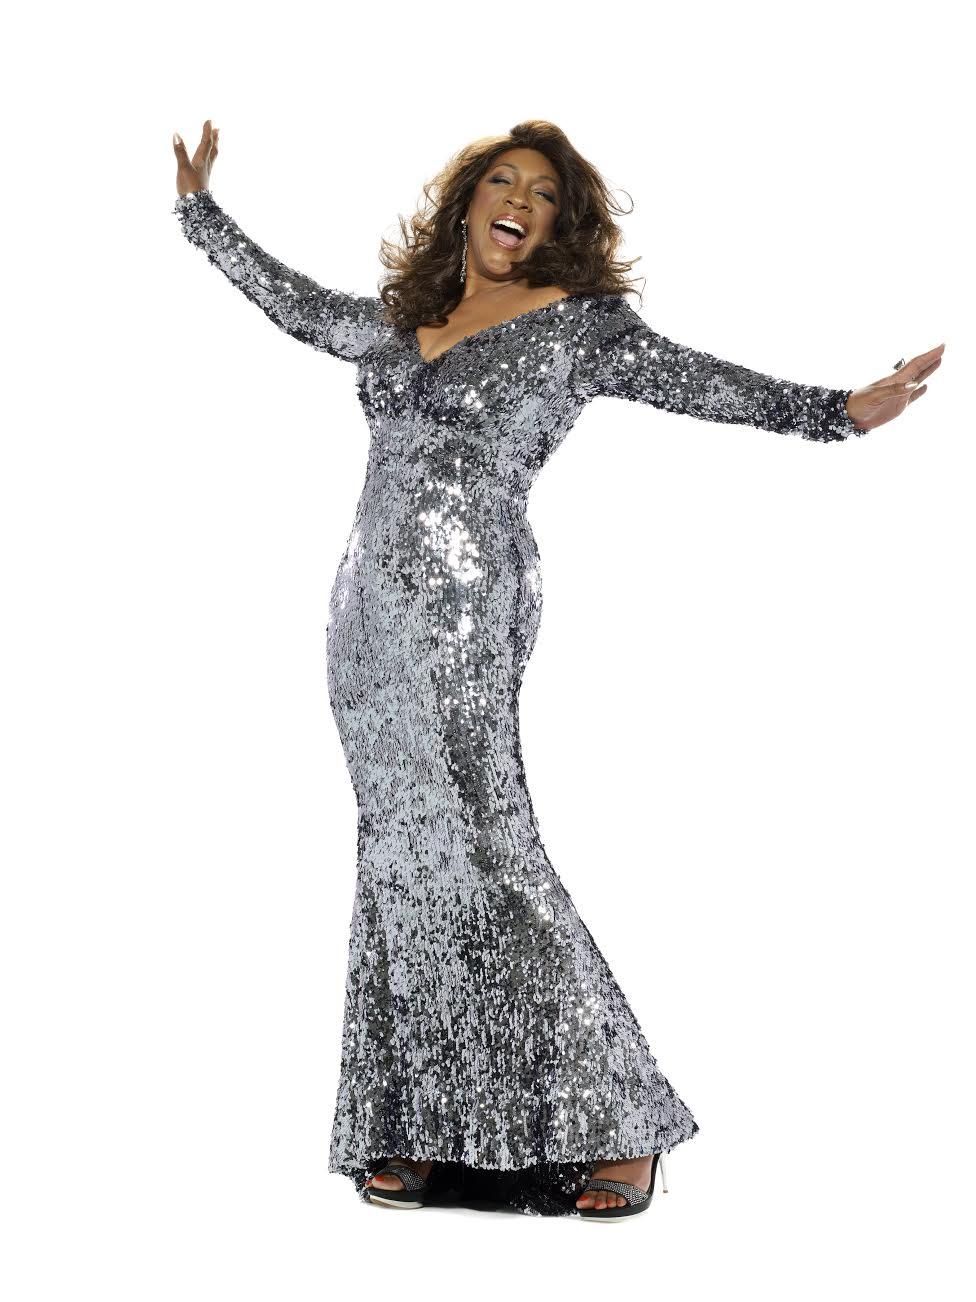 Tonight Is About Me: Interview with Mary Wilson of The Supremes